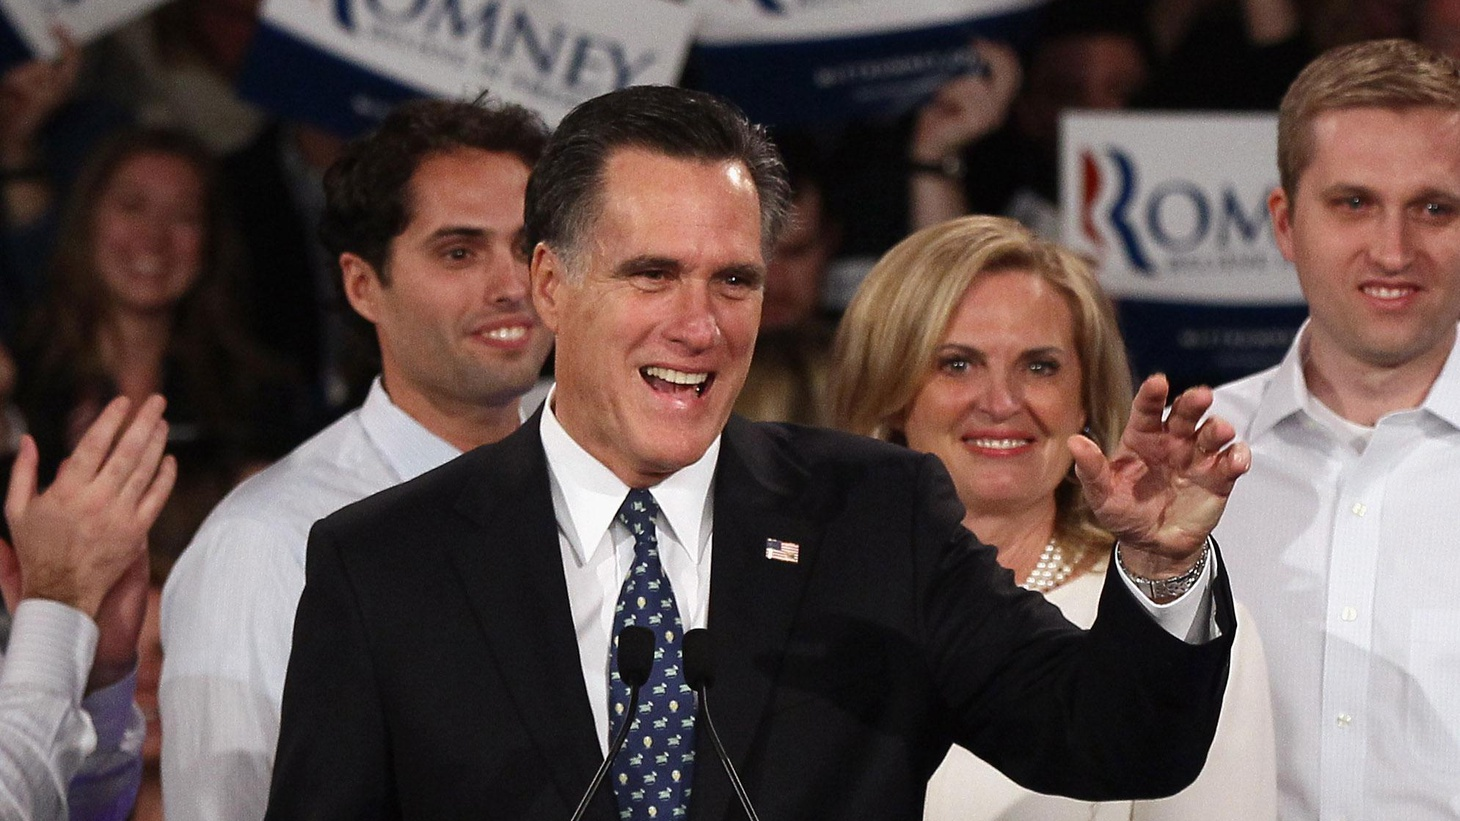 Mitt Romney is two for two leading into South Carolina, where Gingrich, Perry, Santorum and Paul are ready to give him trouble. But GOP power brokers and fundraisers are...